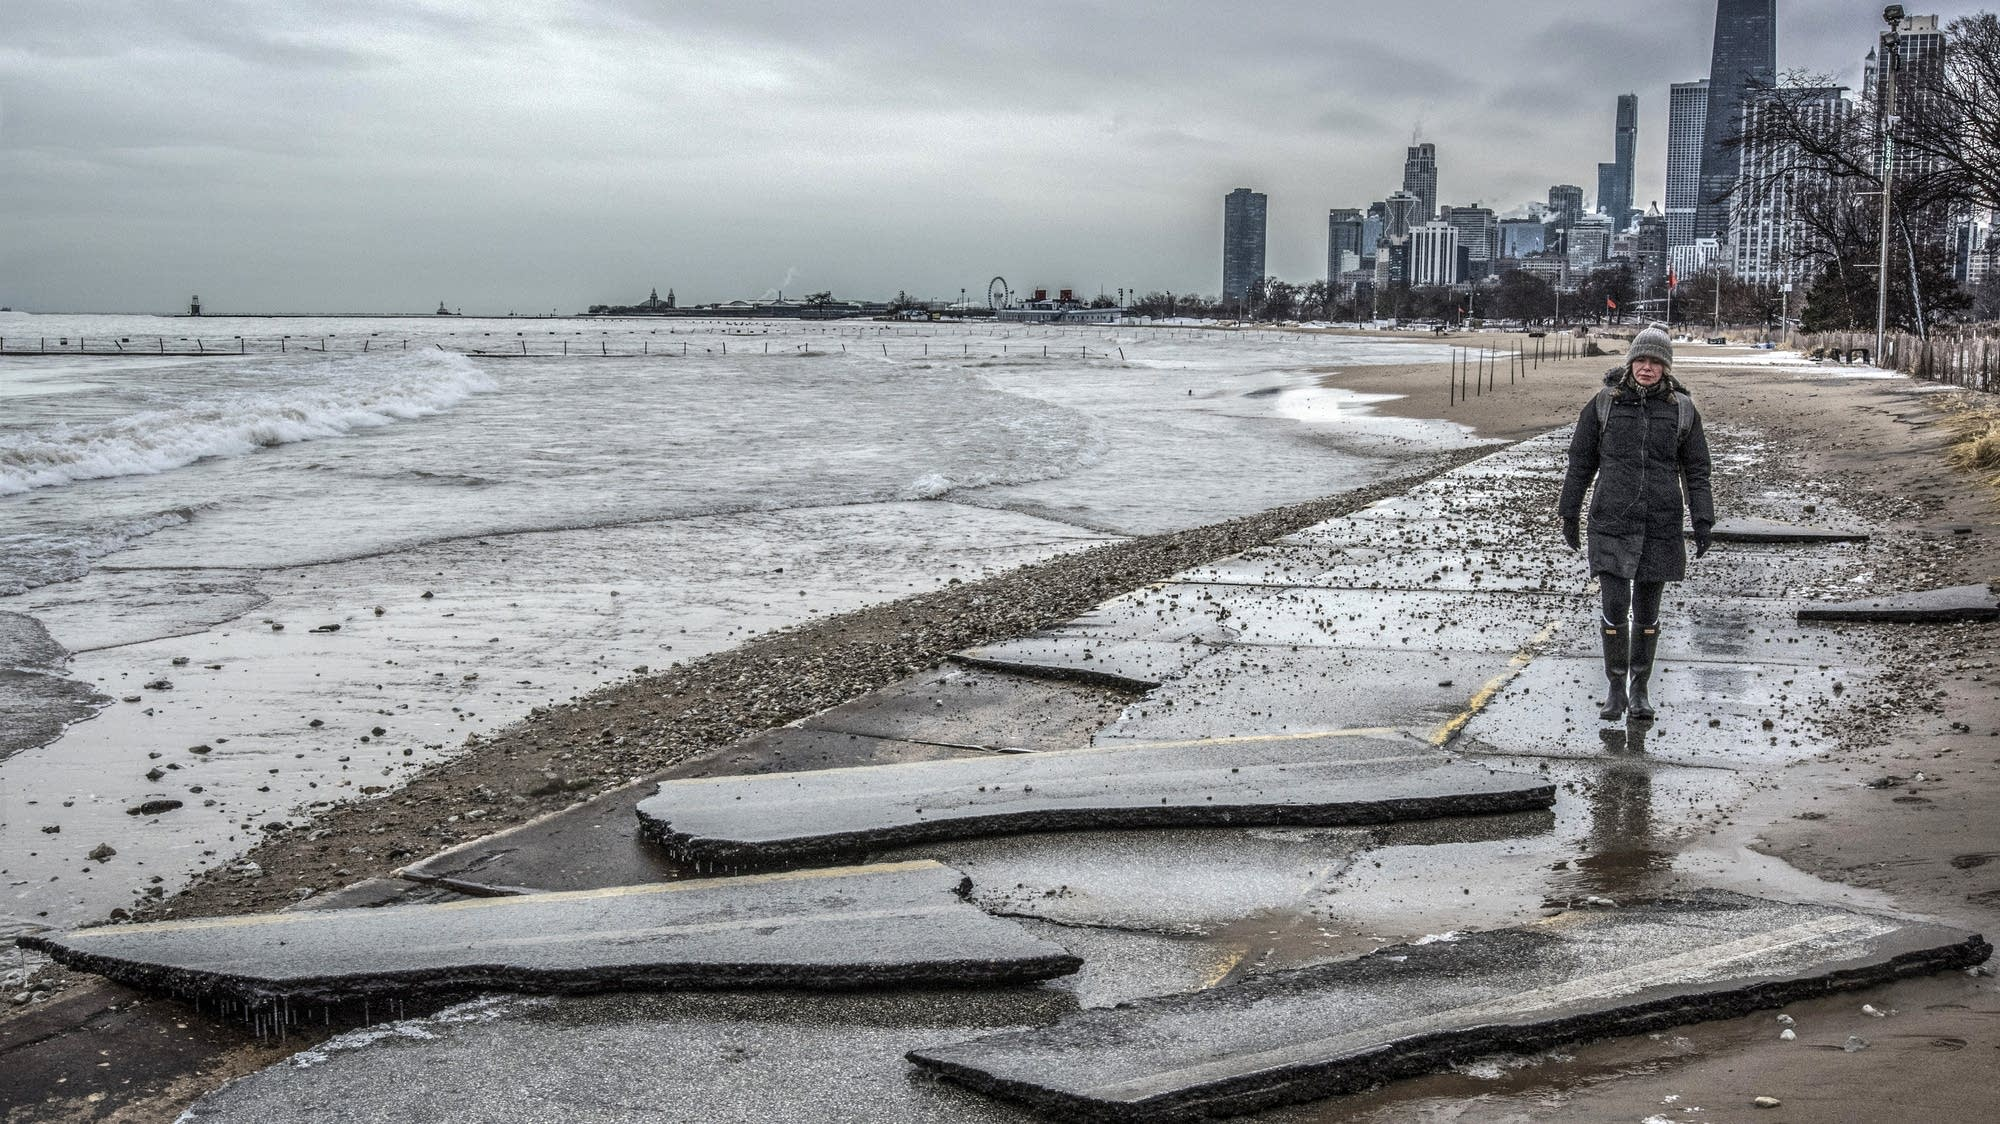 After the flood: How Chicago is coping with the effects of climate change